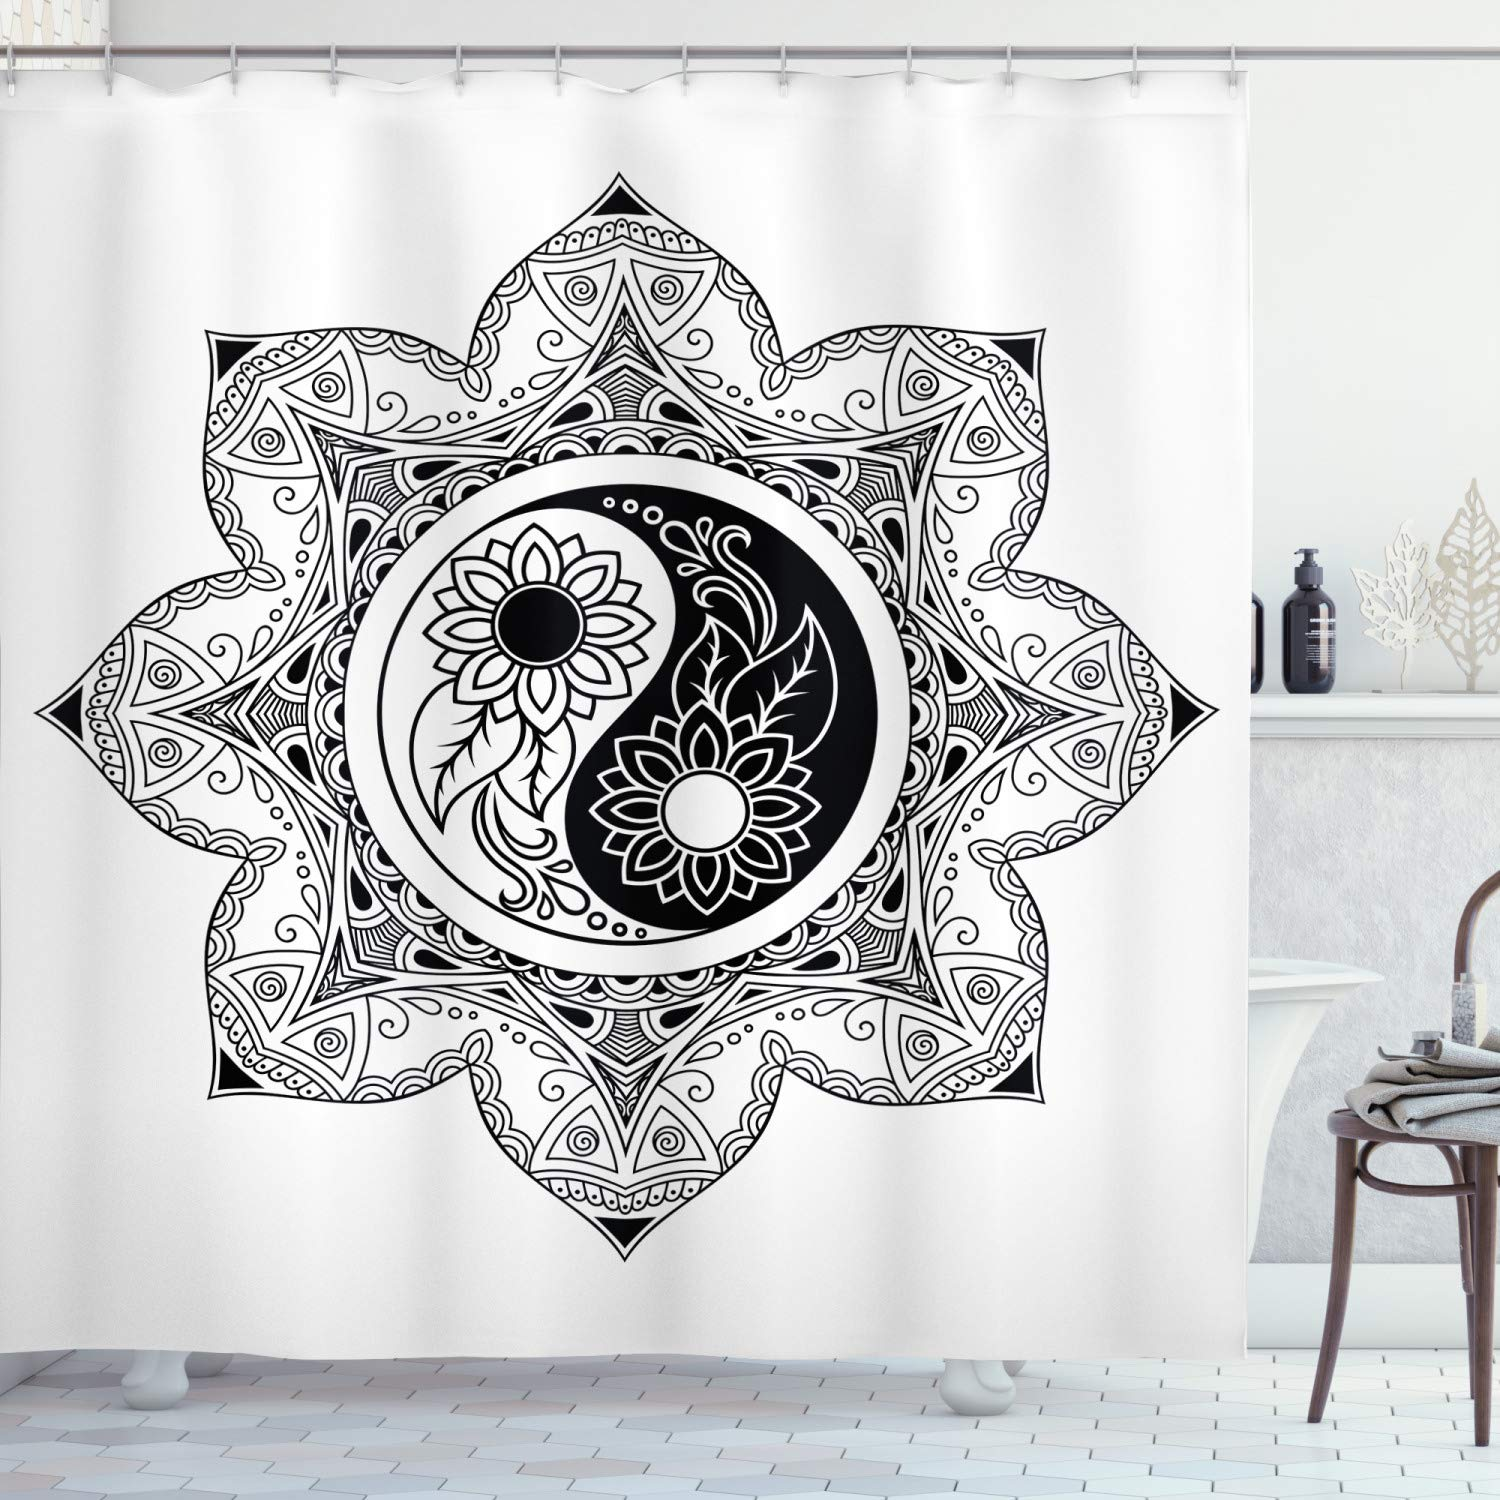 """Ambesonne Ying Yang Shower Curtain, Boho Ying Yang in a Flower Hippie Design Floral Mandala Pattern, Cloth Fabric Bathroom Decor Set with Hooks, 75"""" Long, Black and White"""